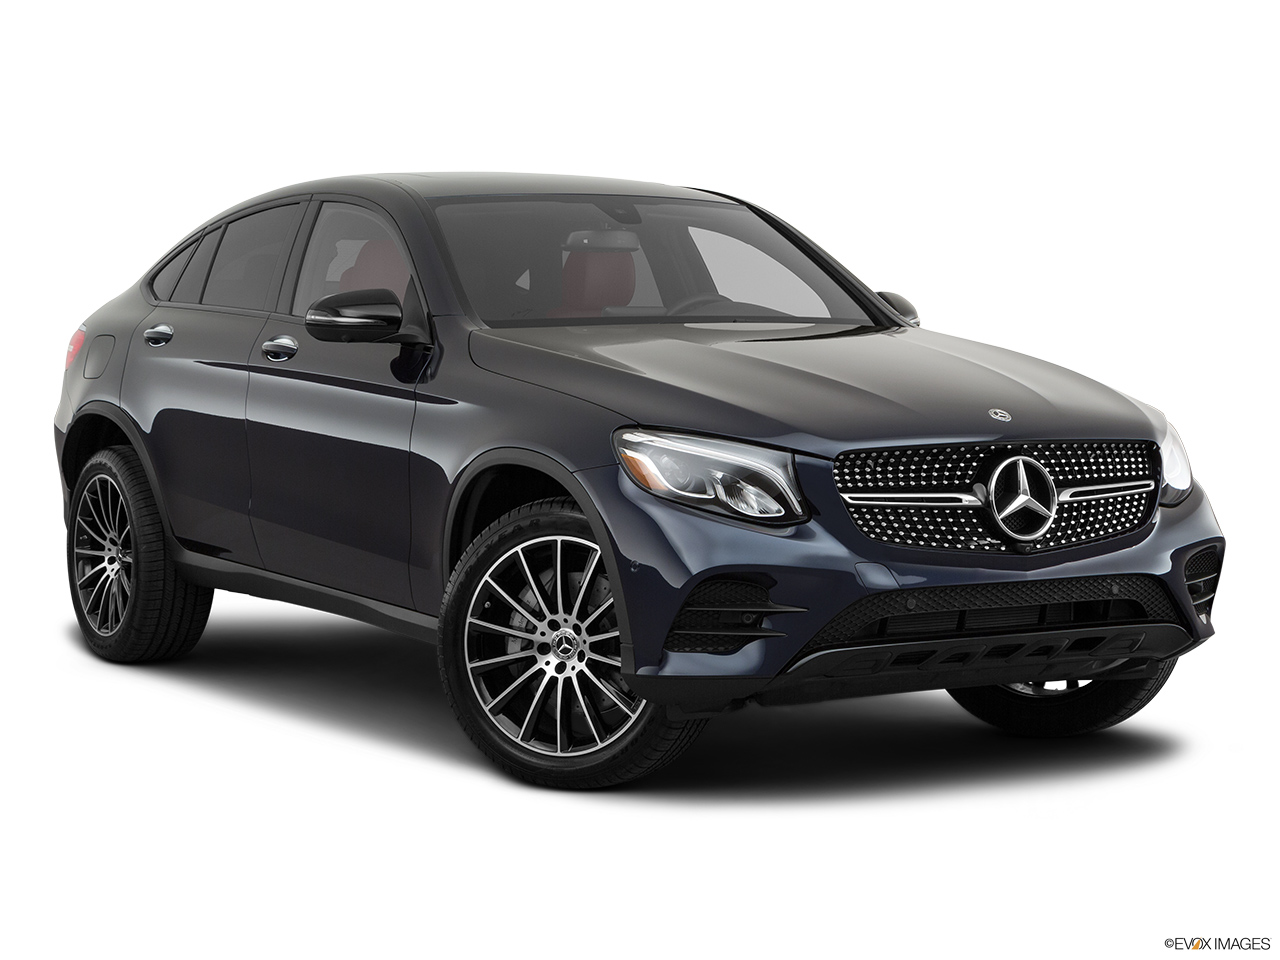 2019 Mercedes-Benz GLC-Class Coupe GLC 300 4MATIC Front passenger 3/4 w/ wheels turned.